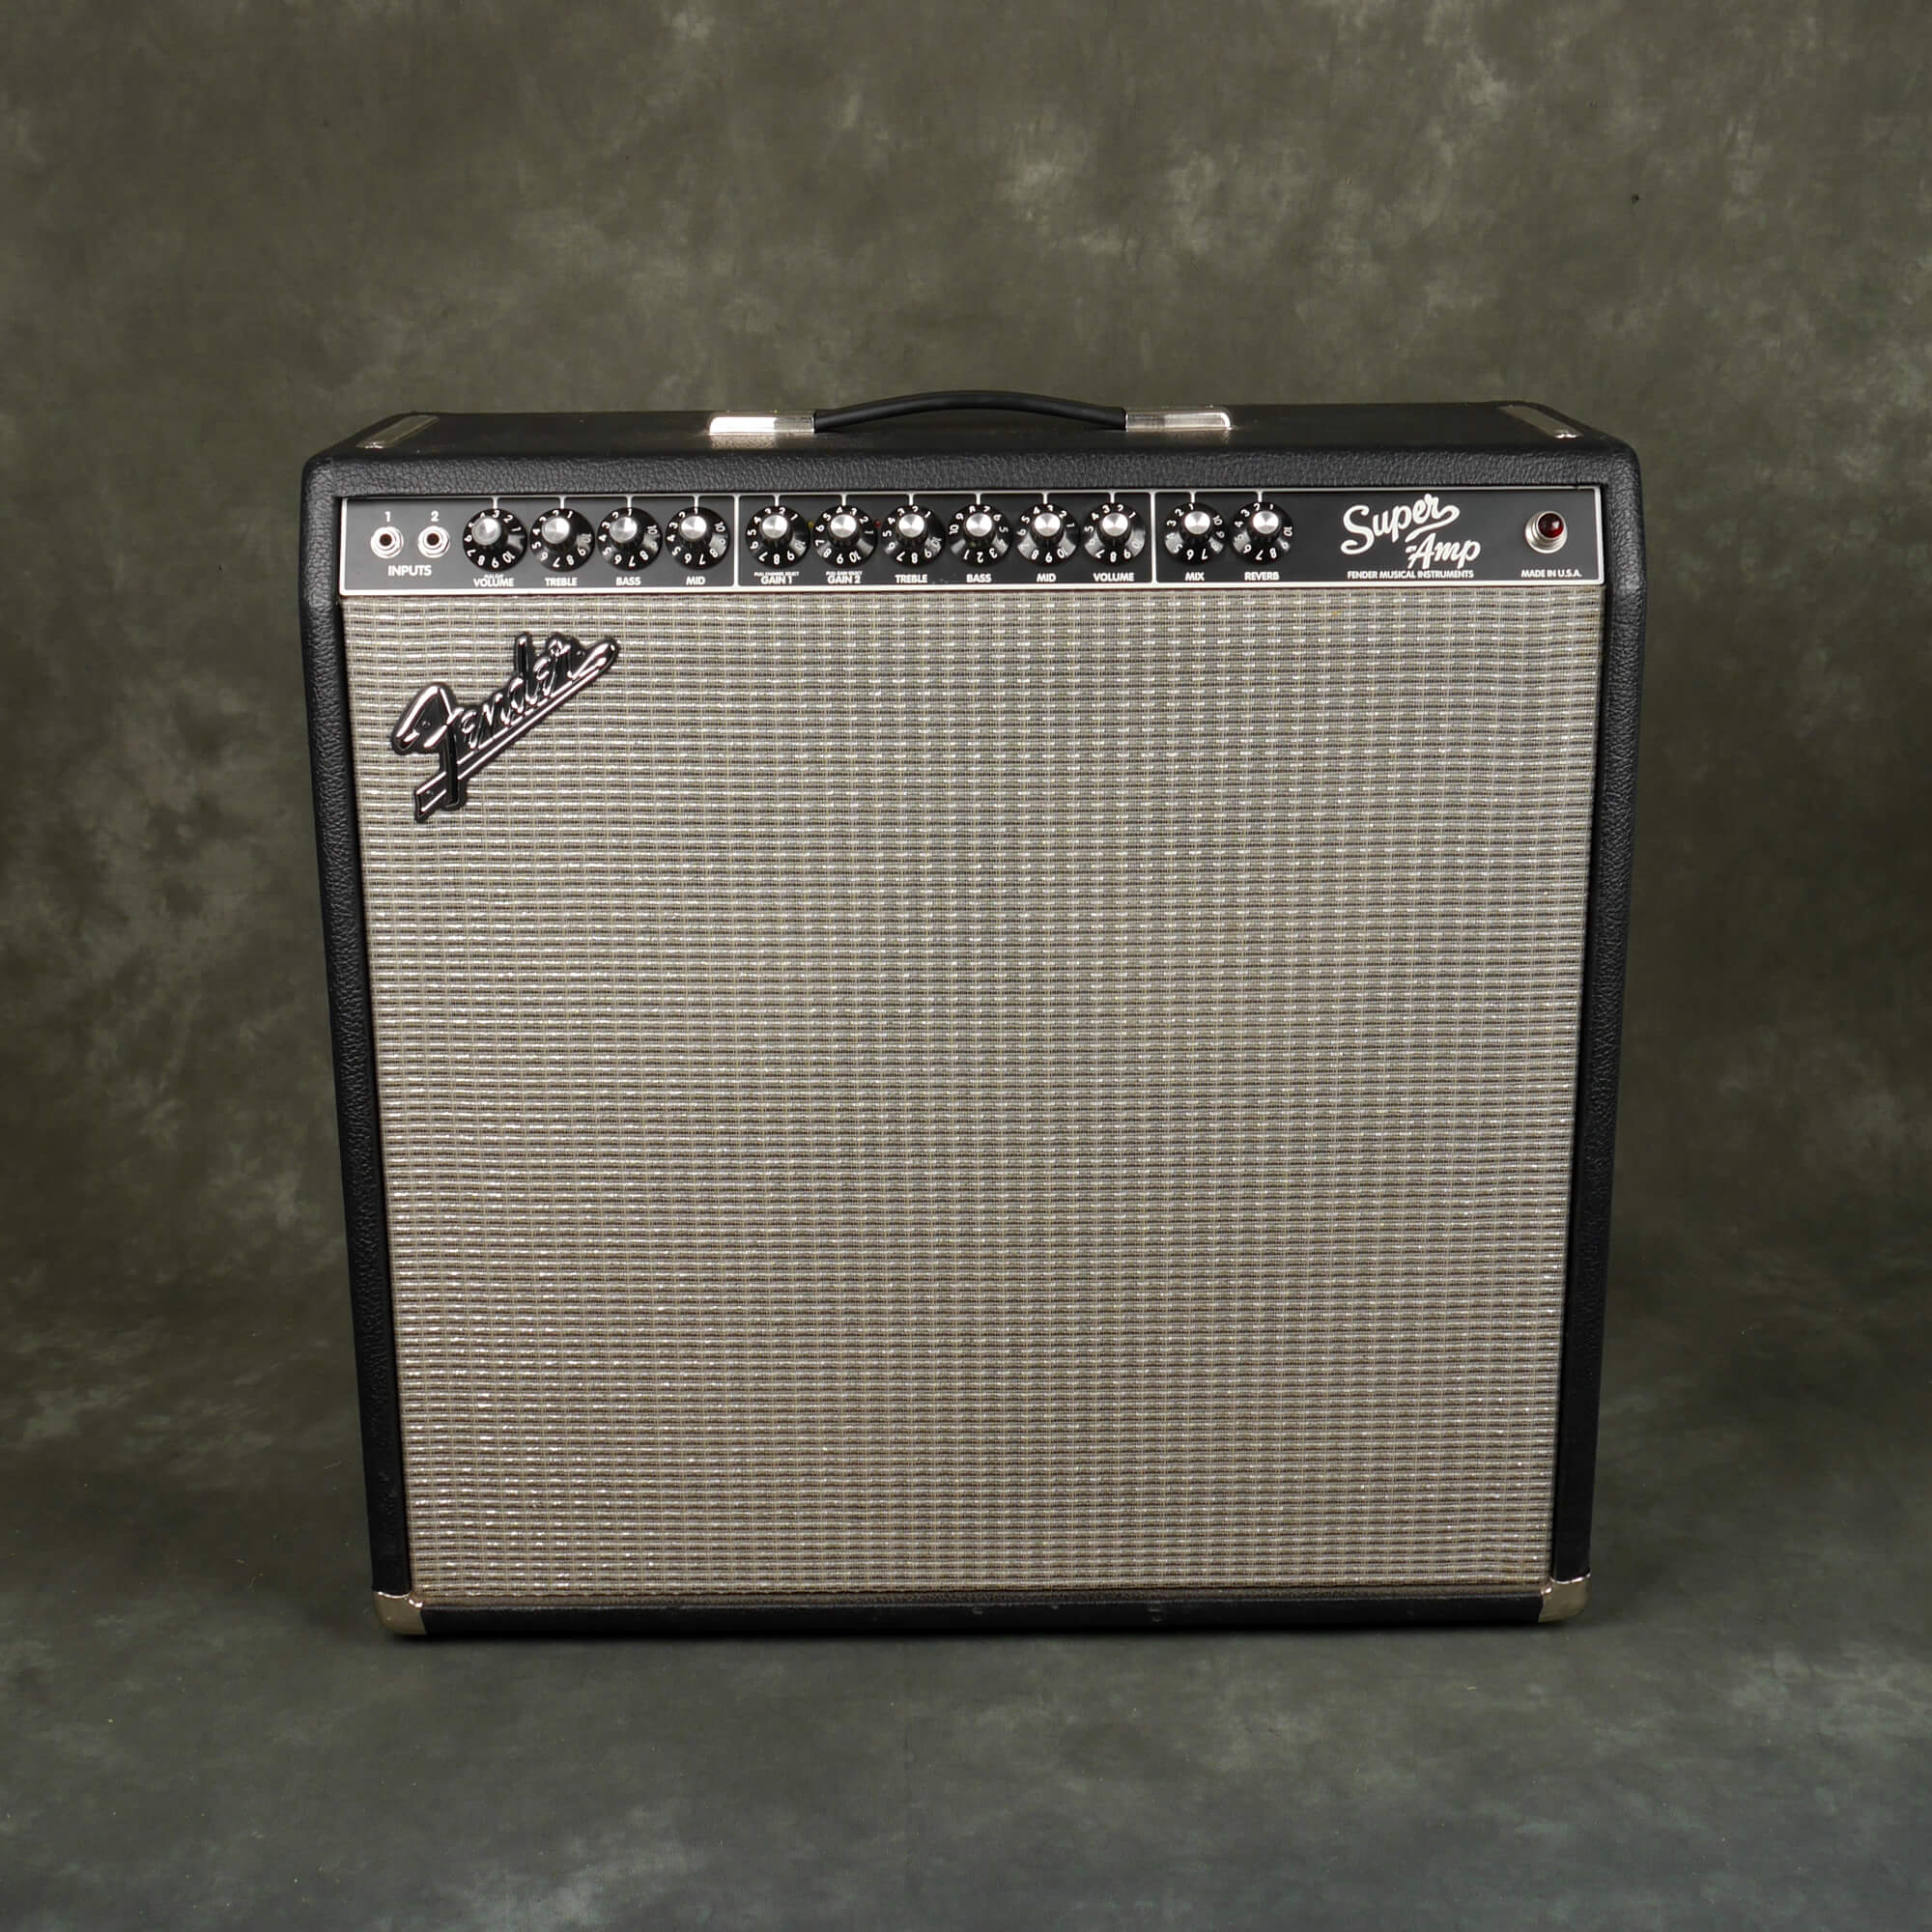 Fender Super Amp 4x10 Combo Amplifier - 2nd Hand **COLLECTION ONLY**